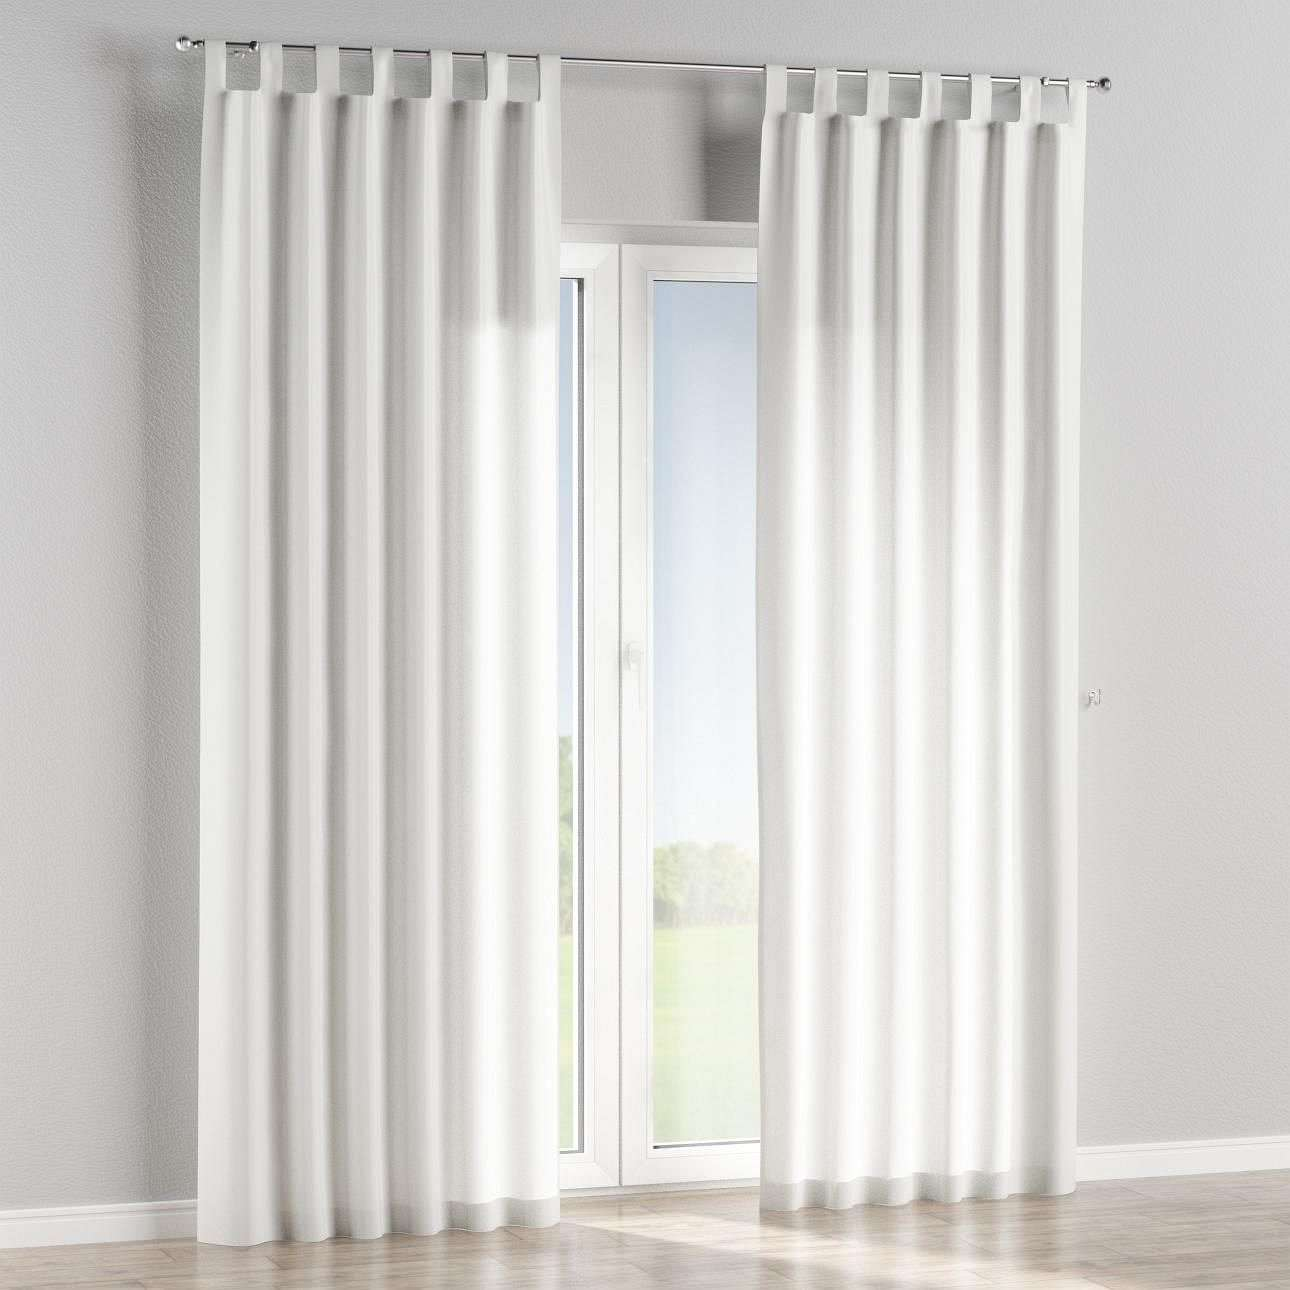 Tab top curtains in collection Mirella, fabric: 140-40